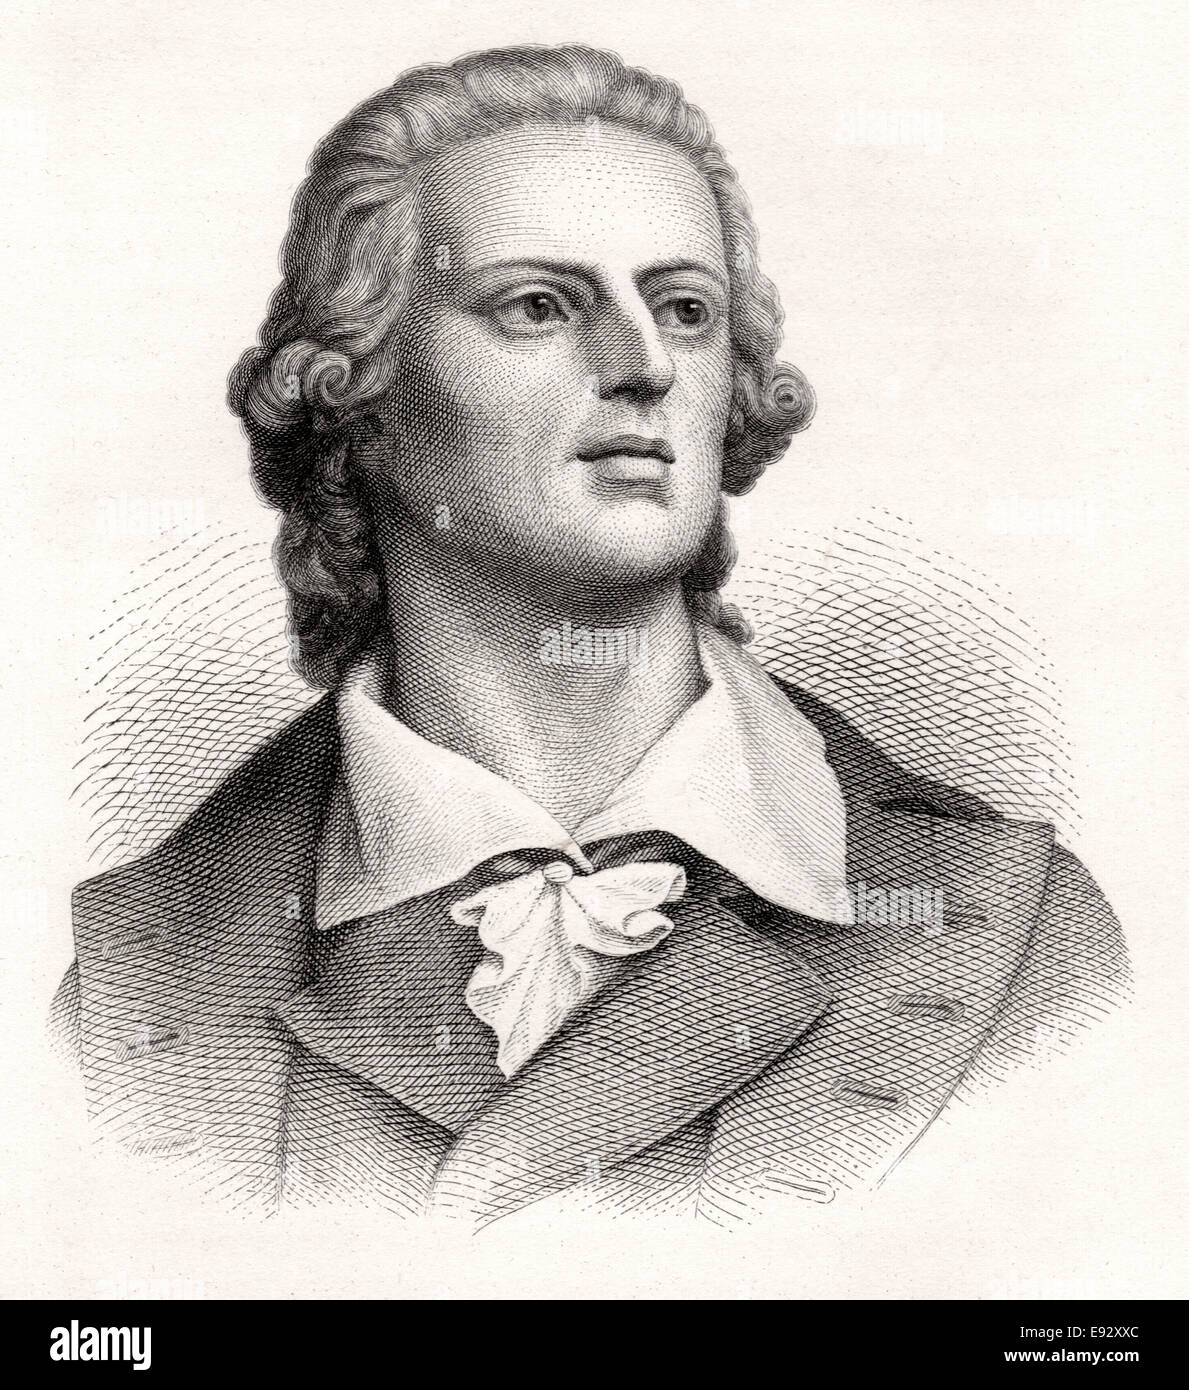 Friedrich Schiller (1759-1809), German Poet, Philosopher, Historian, and Playwright, Engraving, 1873 - Stock Image